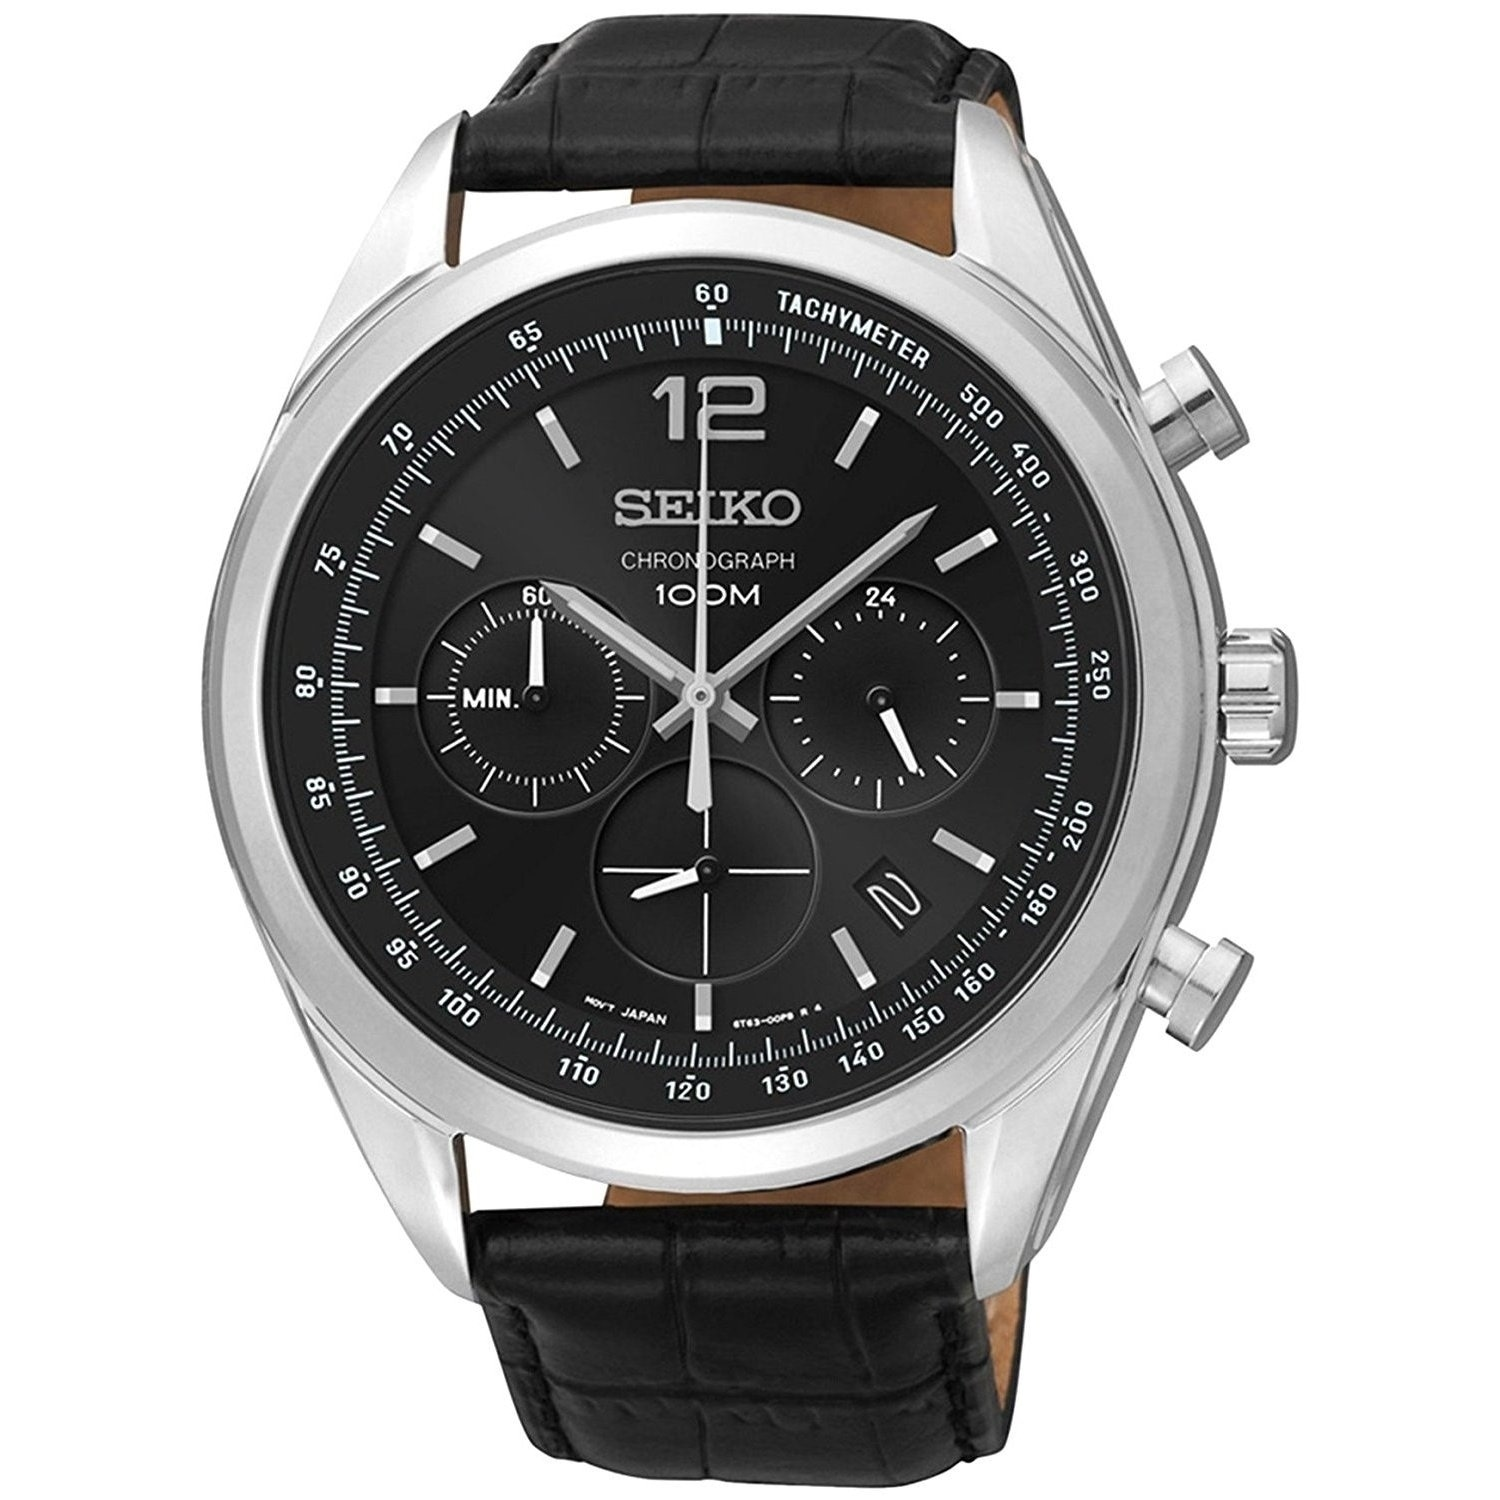 f3f43ebe8 Shop Seiko Men's Chronograph Black Leather Watch - Free Shipping Today -  Overstock - 20904506